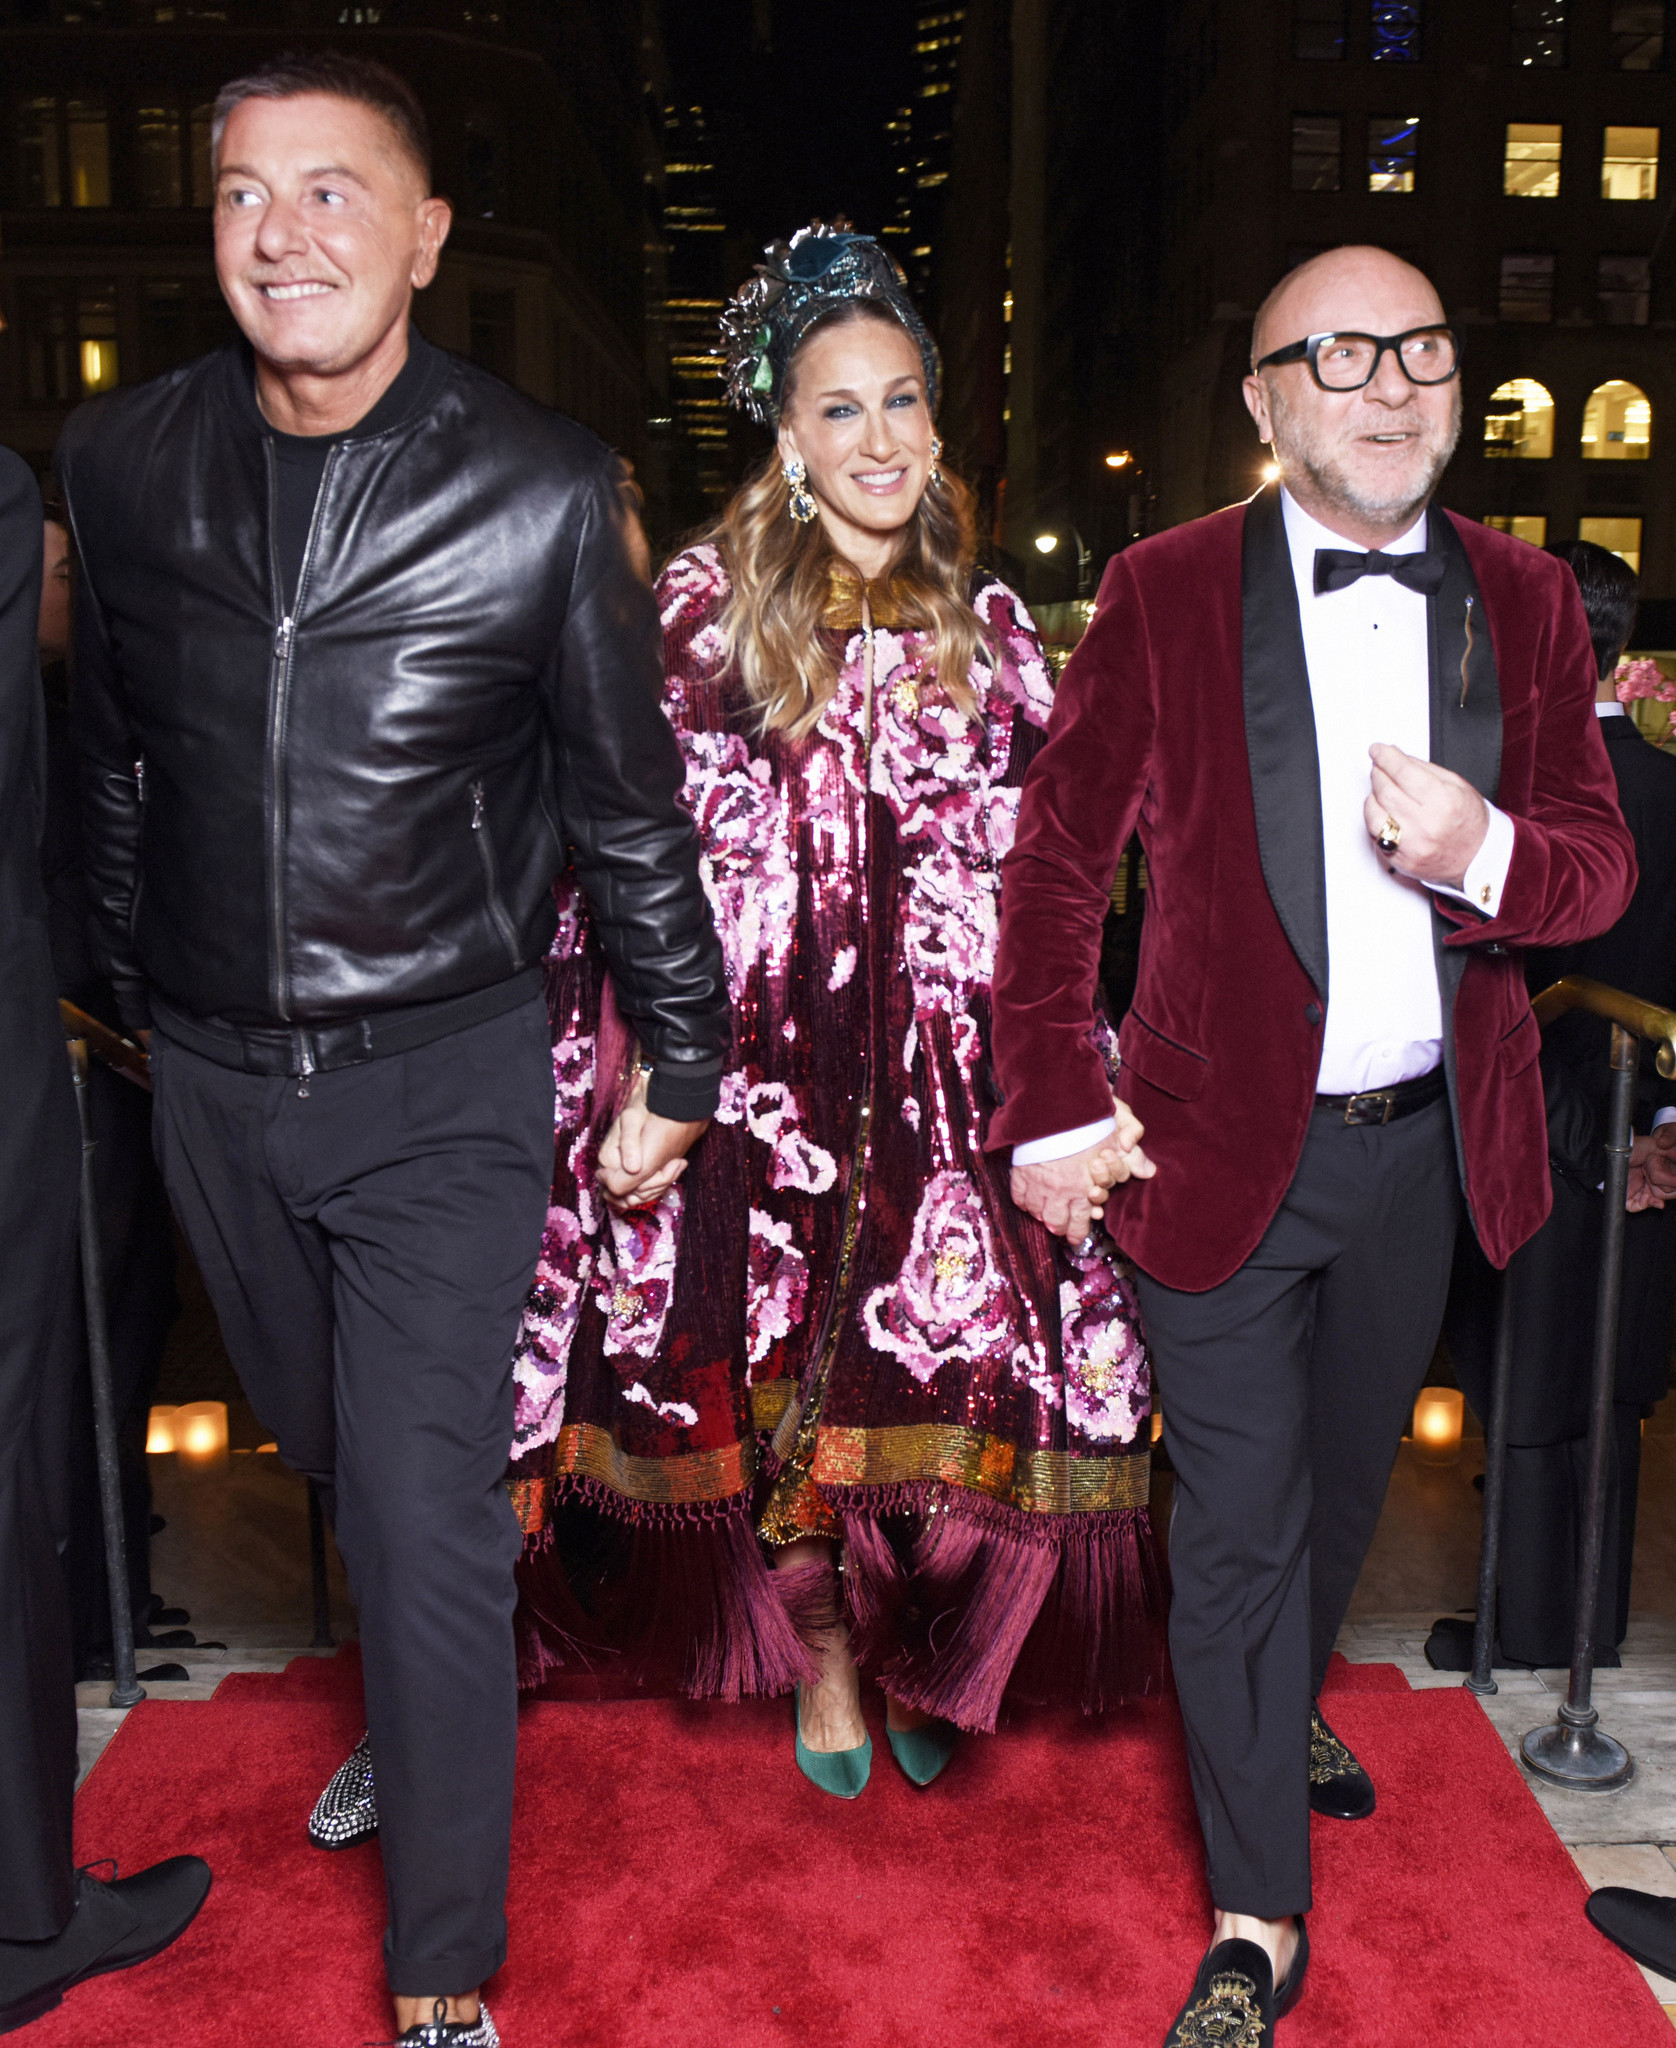 Designers Stefano Gabbana, left, and Domenico Dolce arrive at the New York Public Library for Dolce & Gabbana's Alta Gioielleria presentation with Sarah Jessica Parker on April 6.